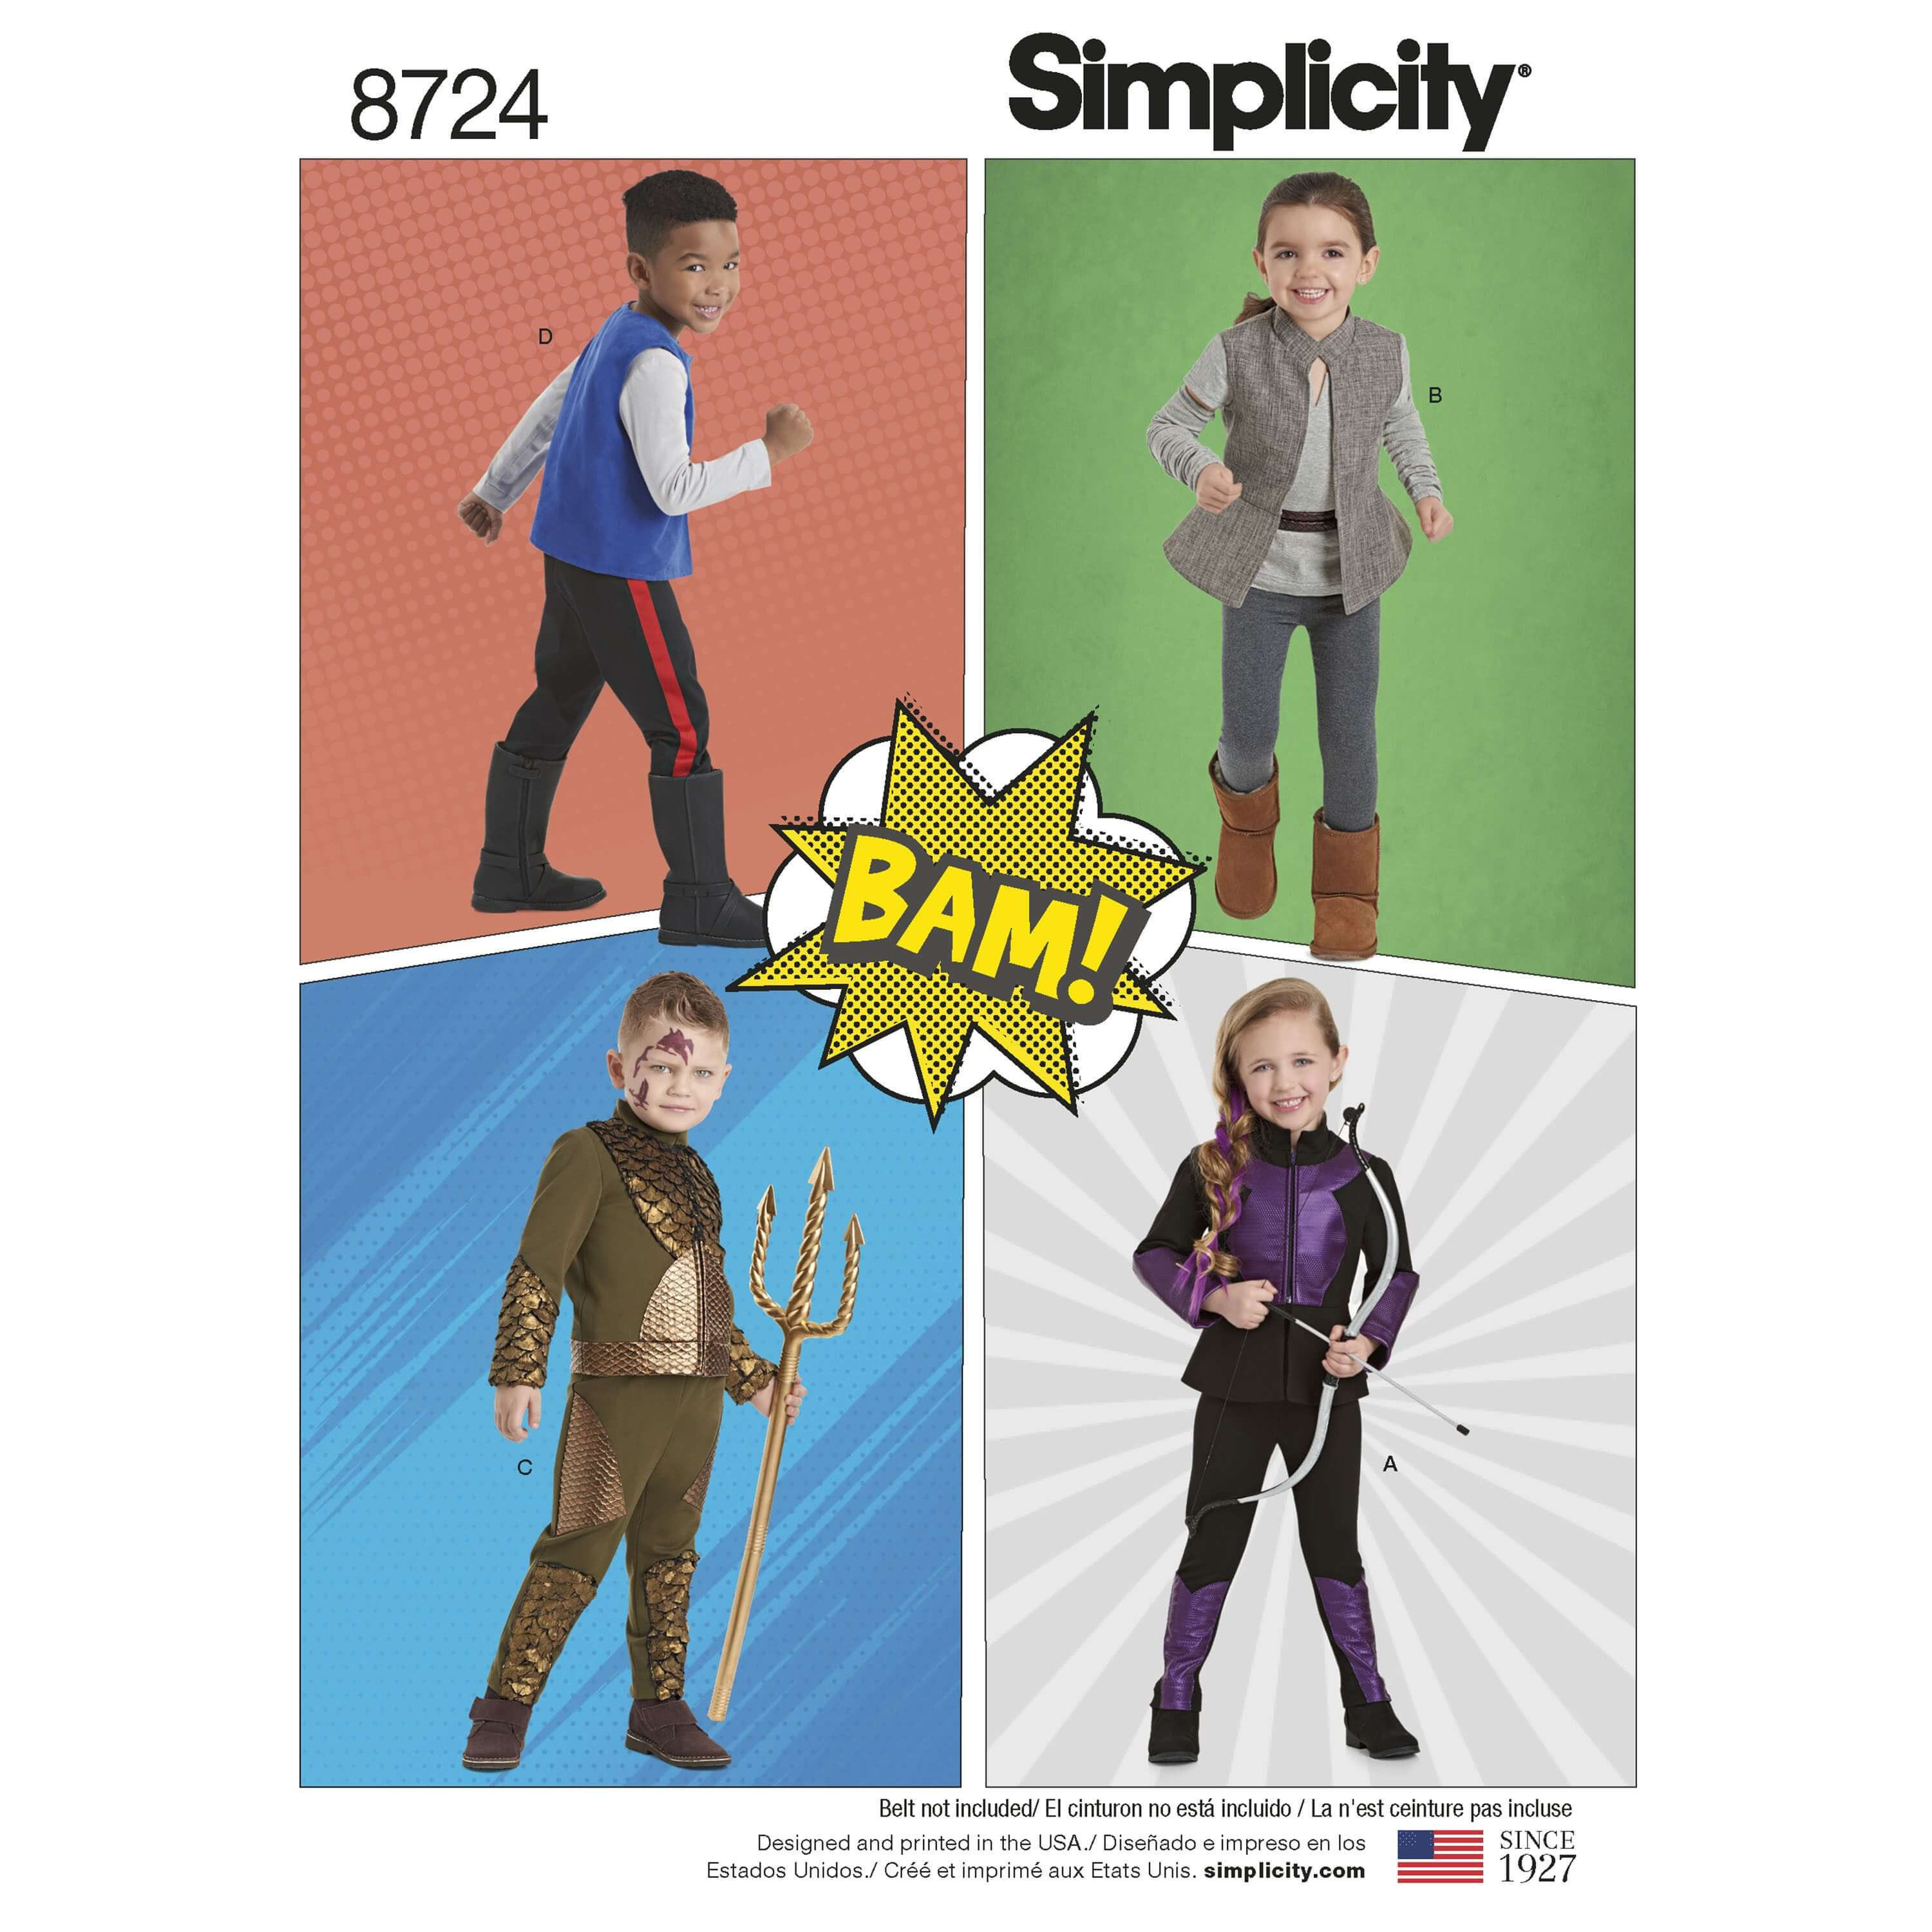 Simplicity Sewing Pattern 8724 Children's Adventure Character Costumes